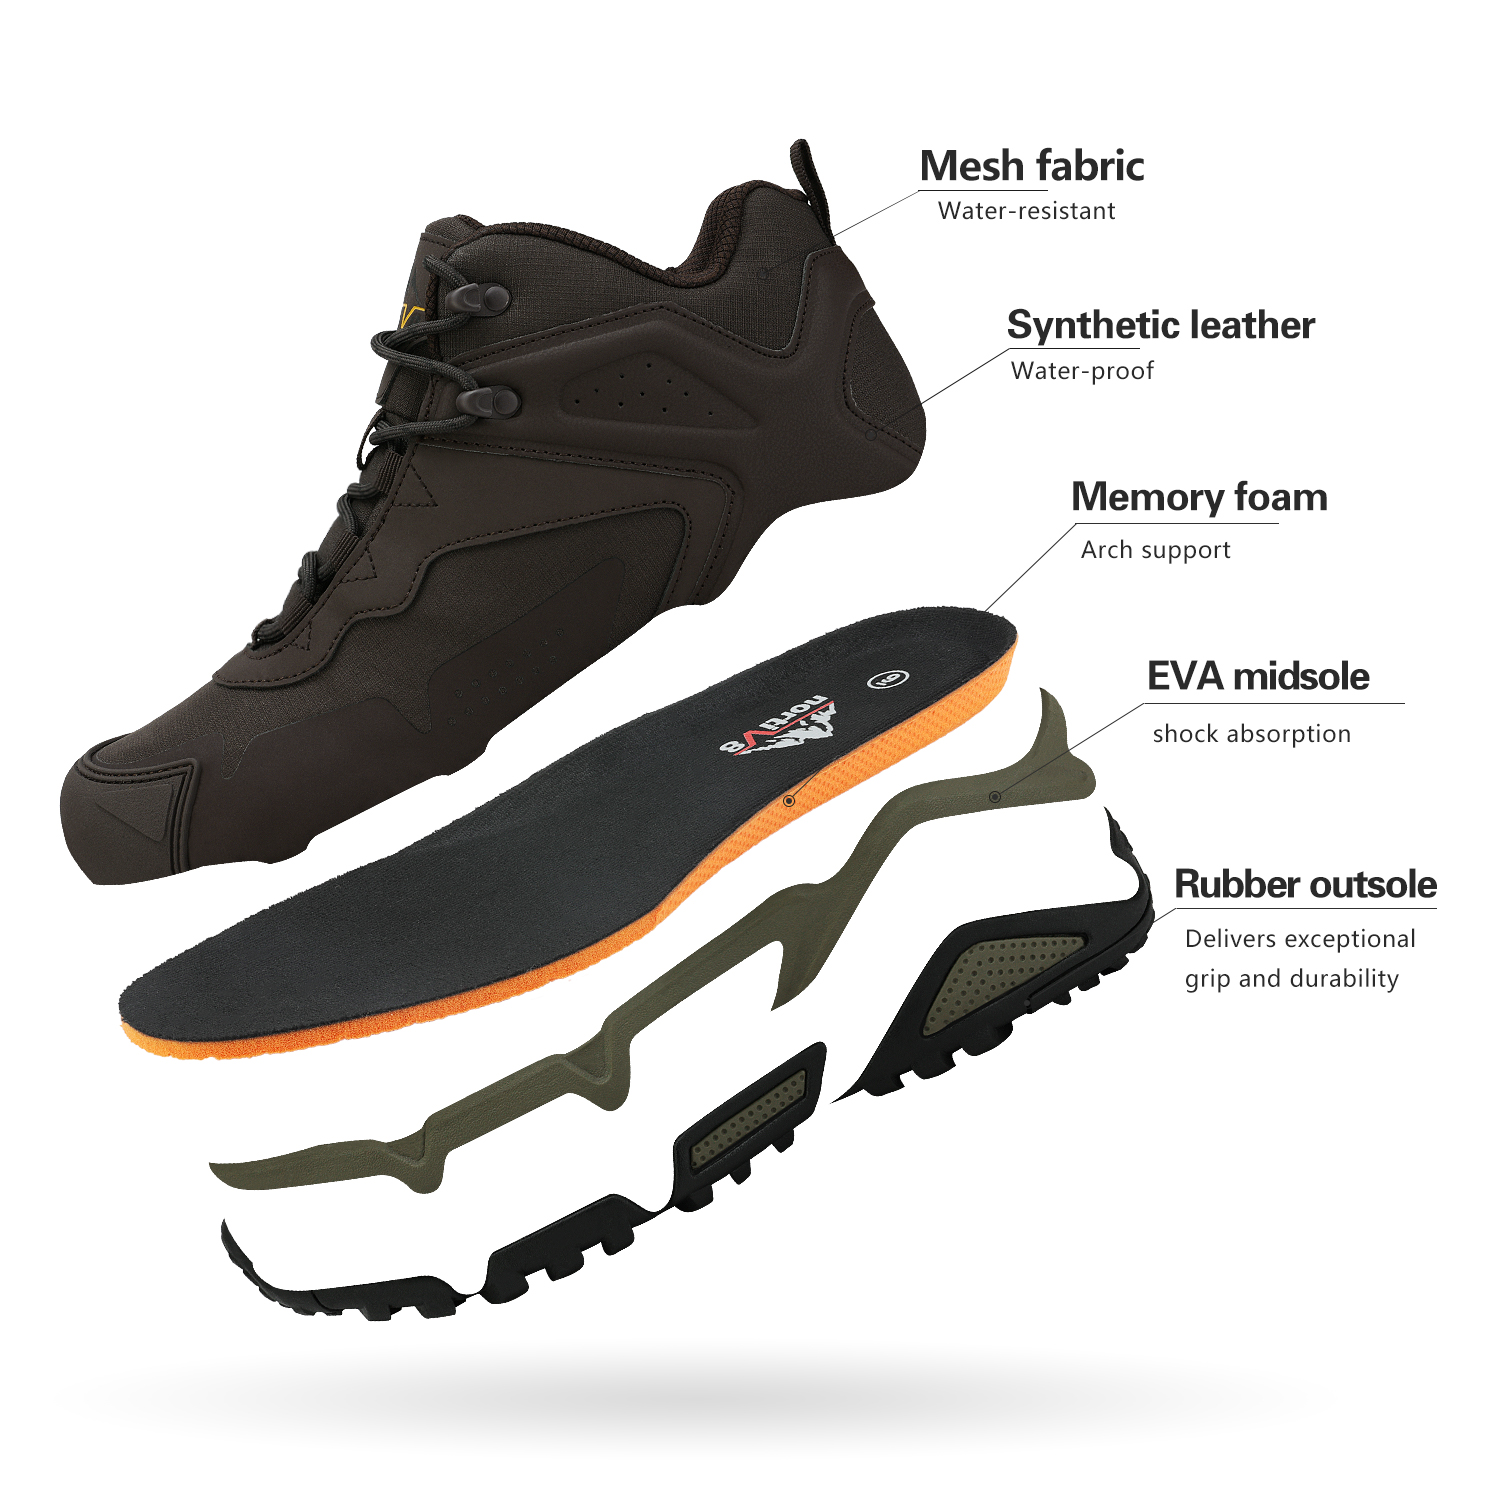 NORTIV-8-Men-039-s-Ankle-Waterproof-Hiking-Boots-Lightweight-Backpacking-Work-Shoes thumbnail 12